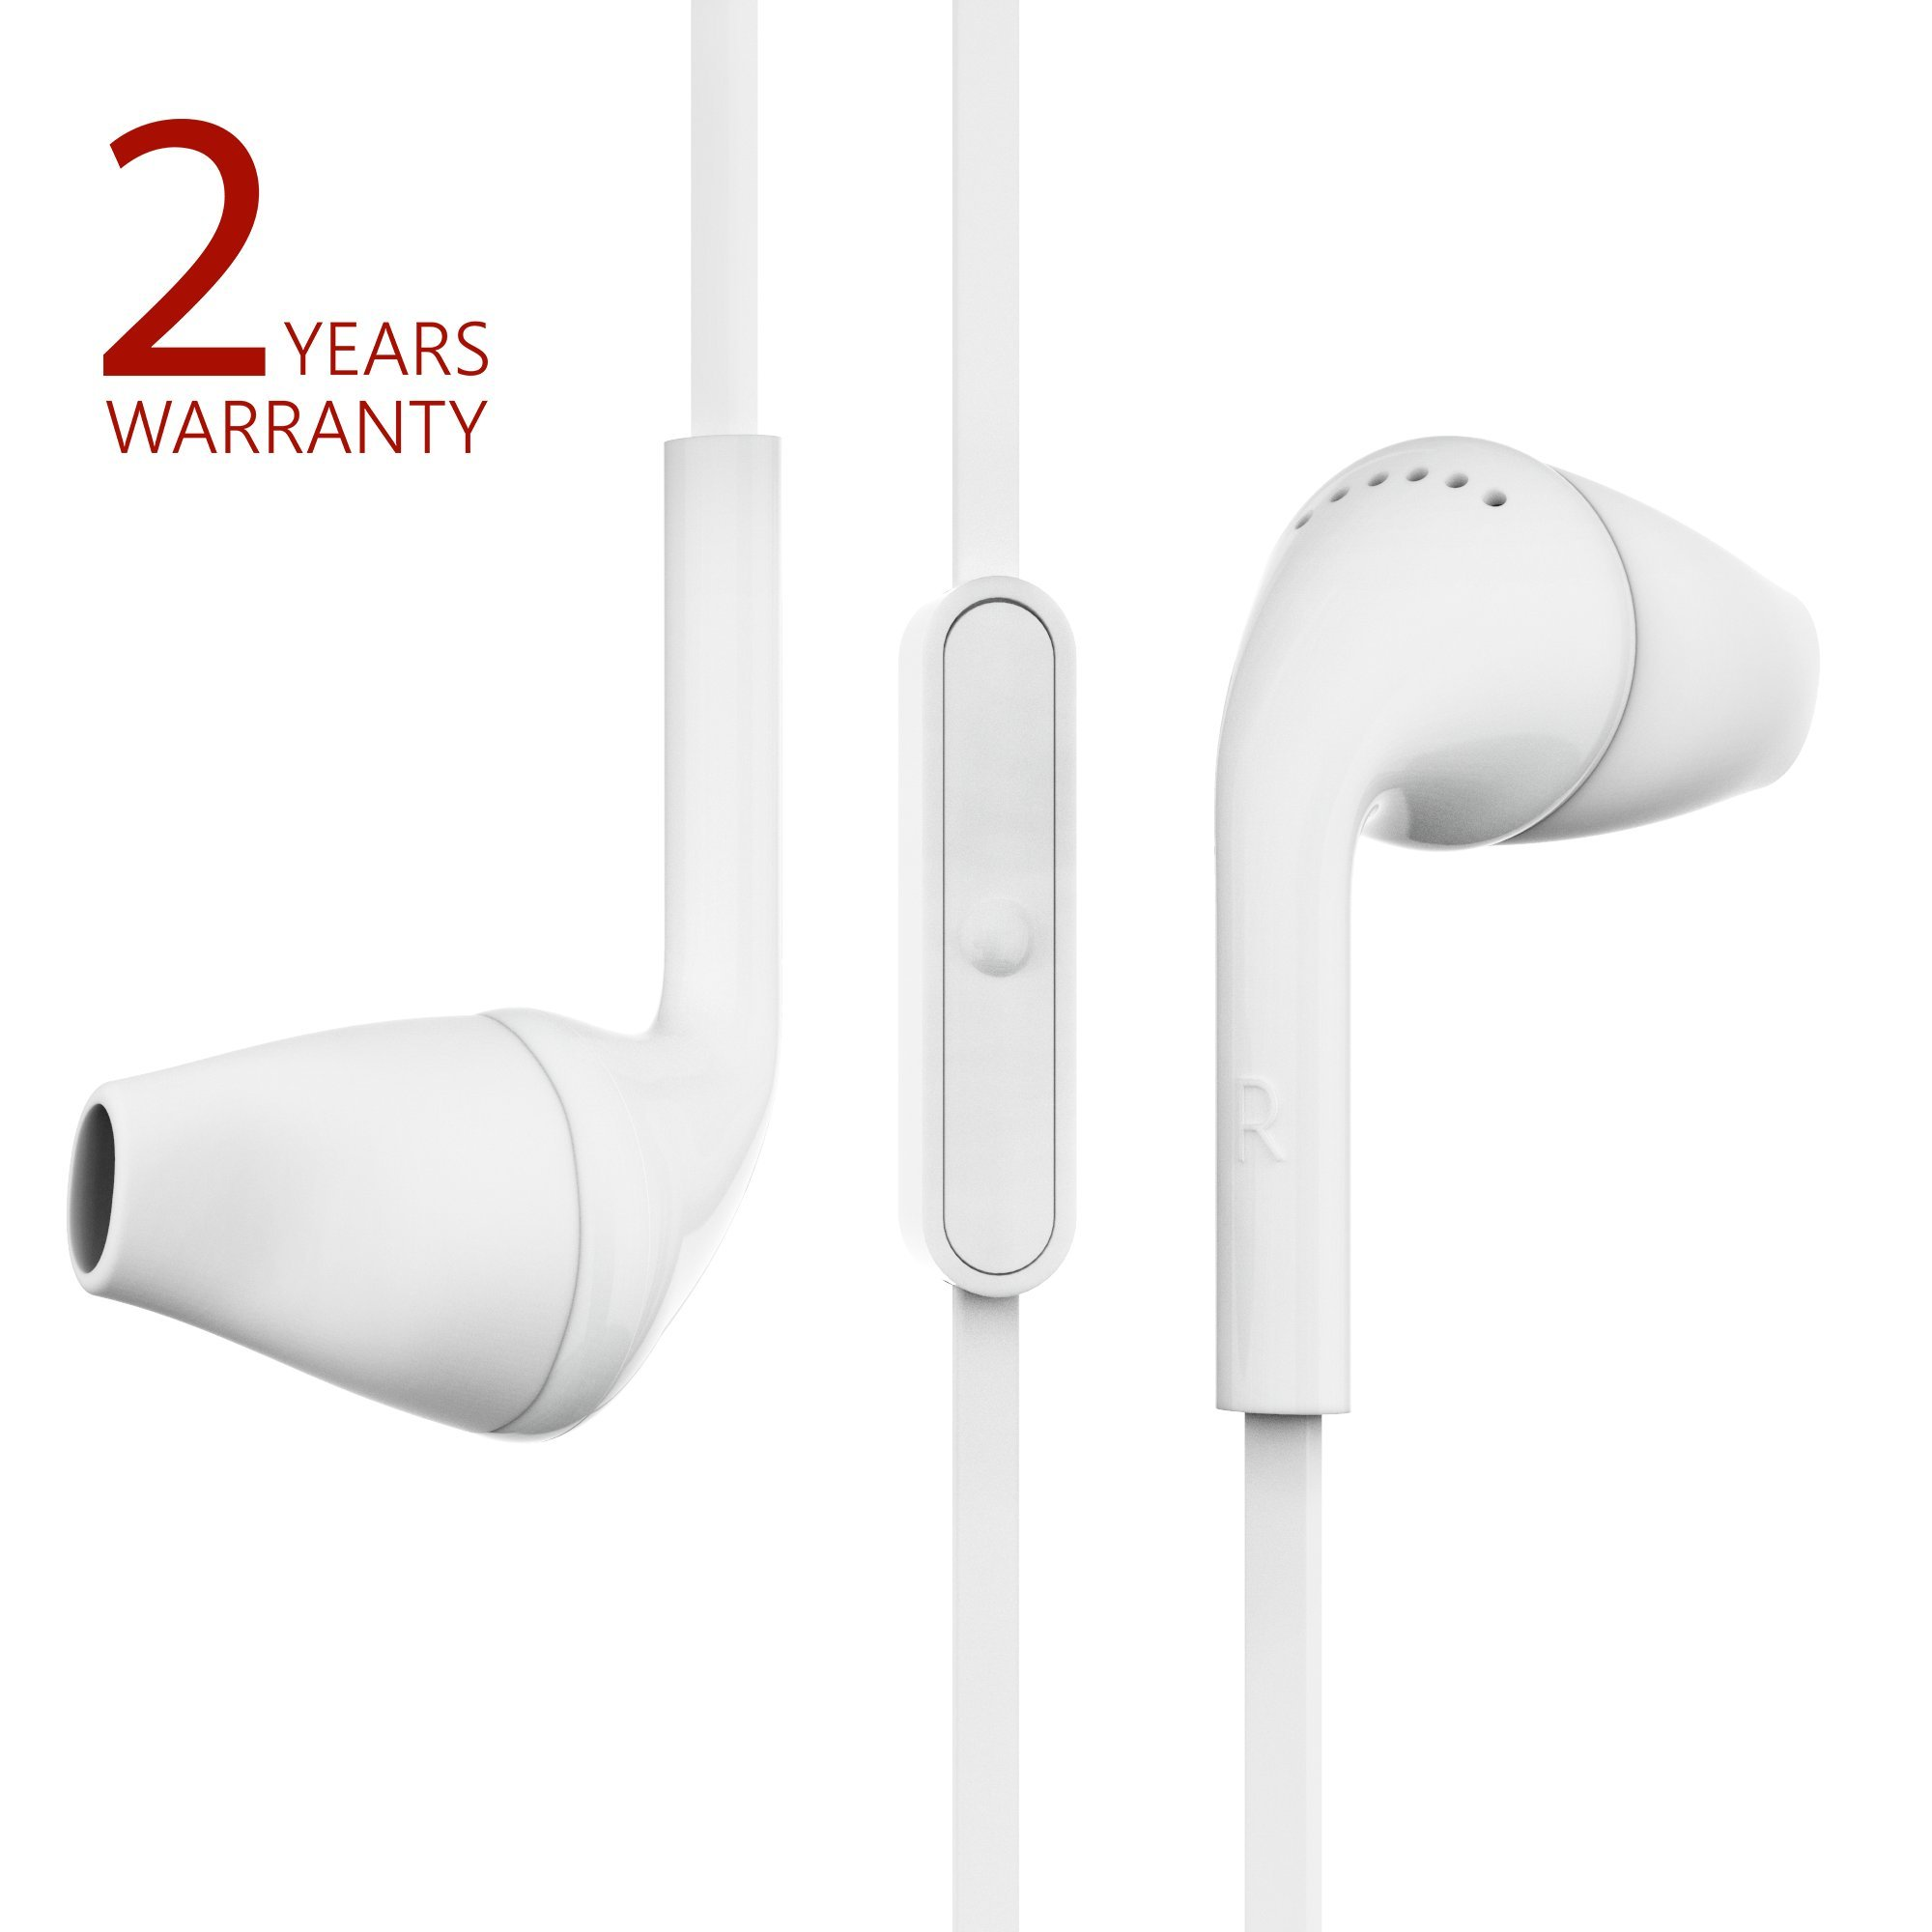 b22ee9fc1db Get Quotations · Ergonomic Wired Earbuds with microphone and remote control  by Probass - In Ear Headphones Earbuds with